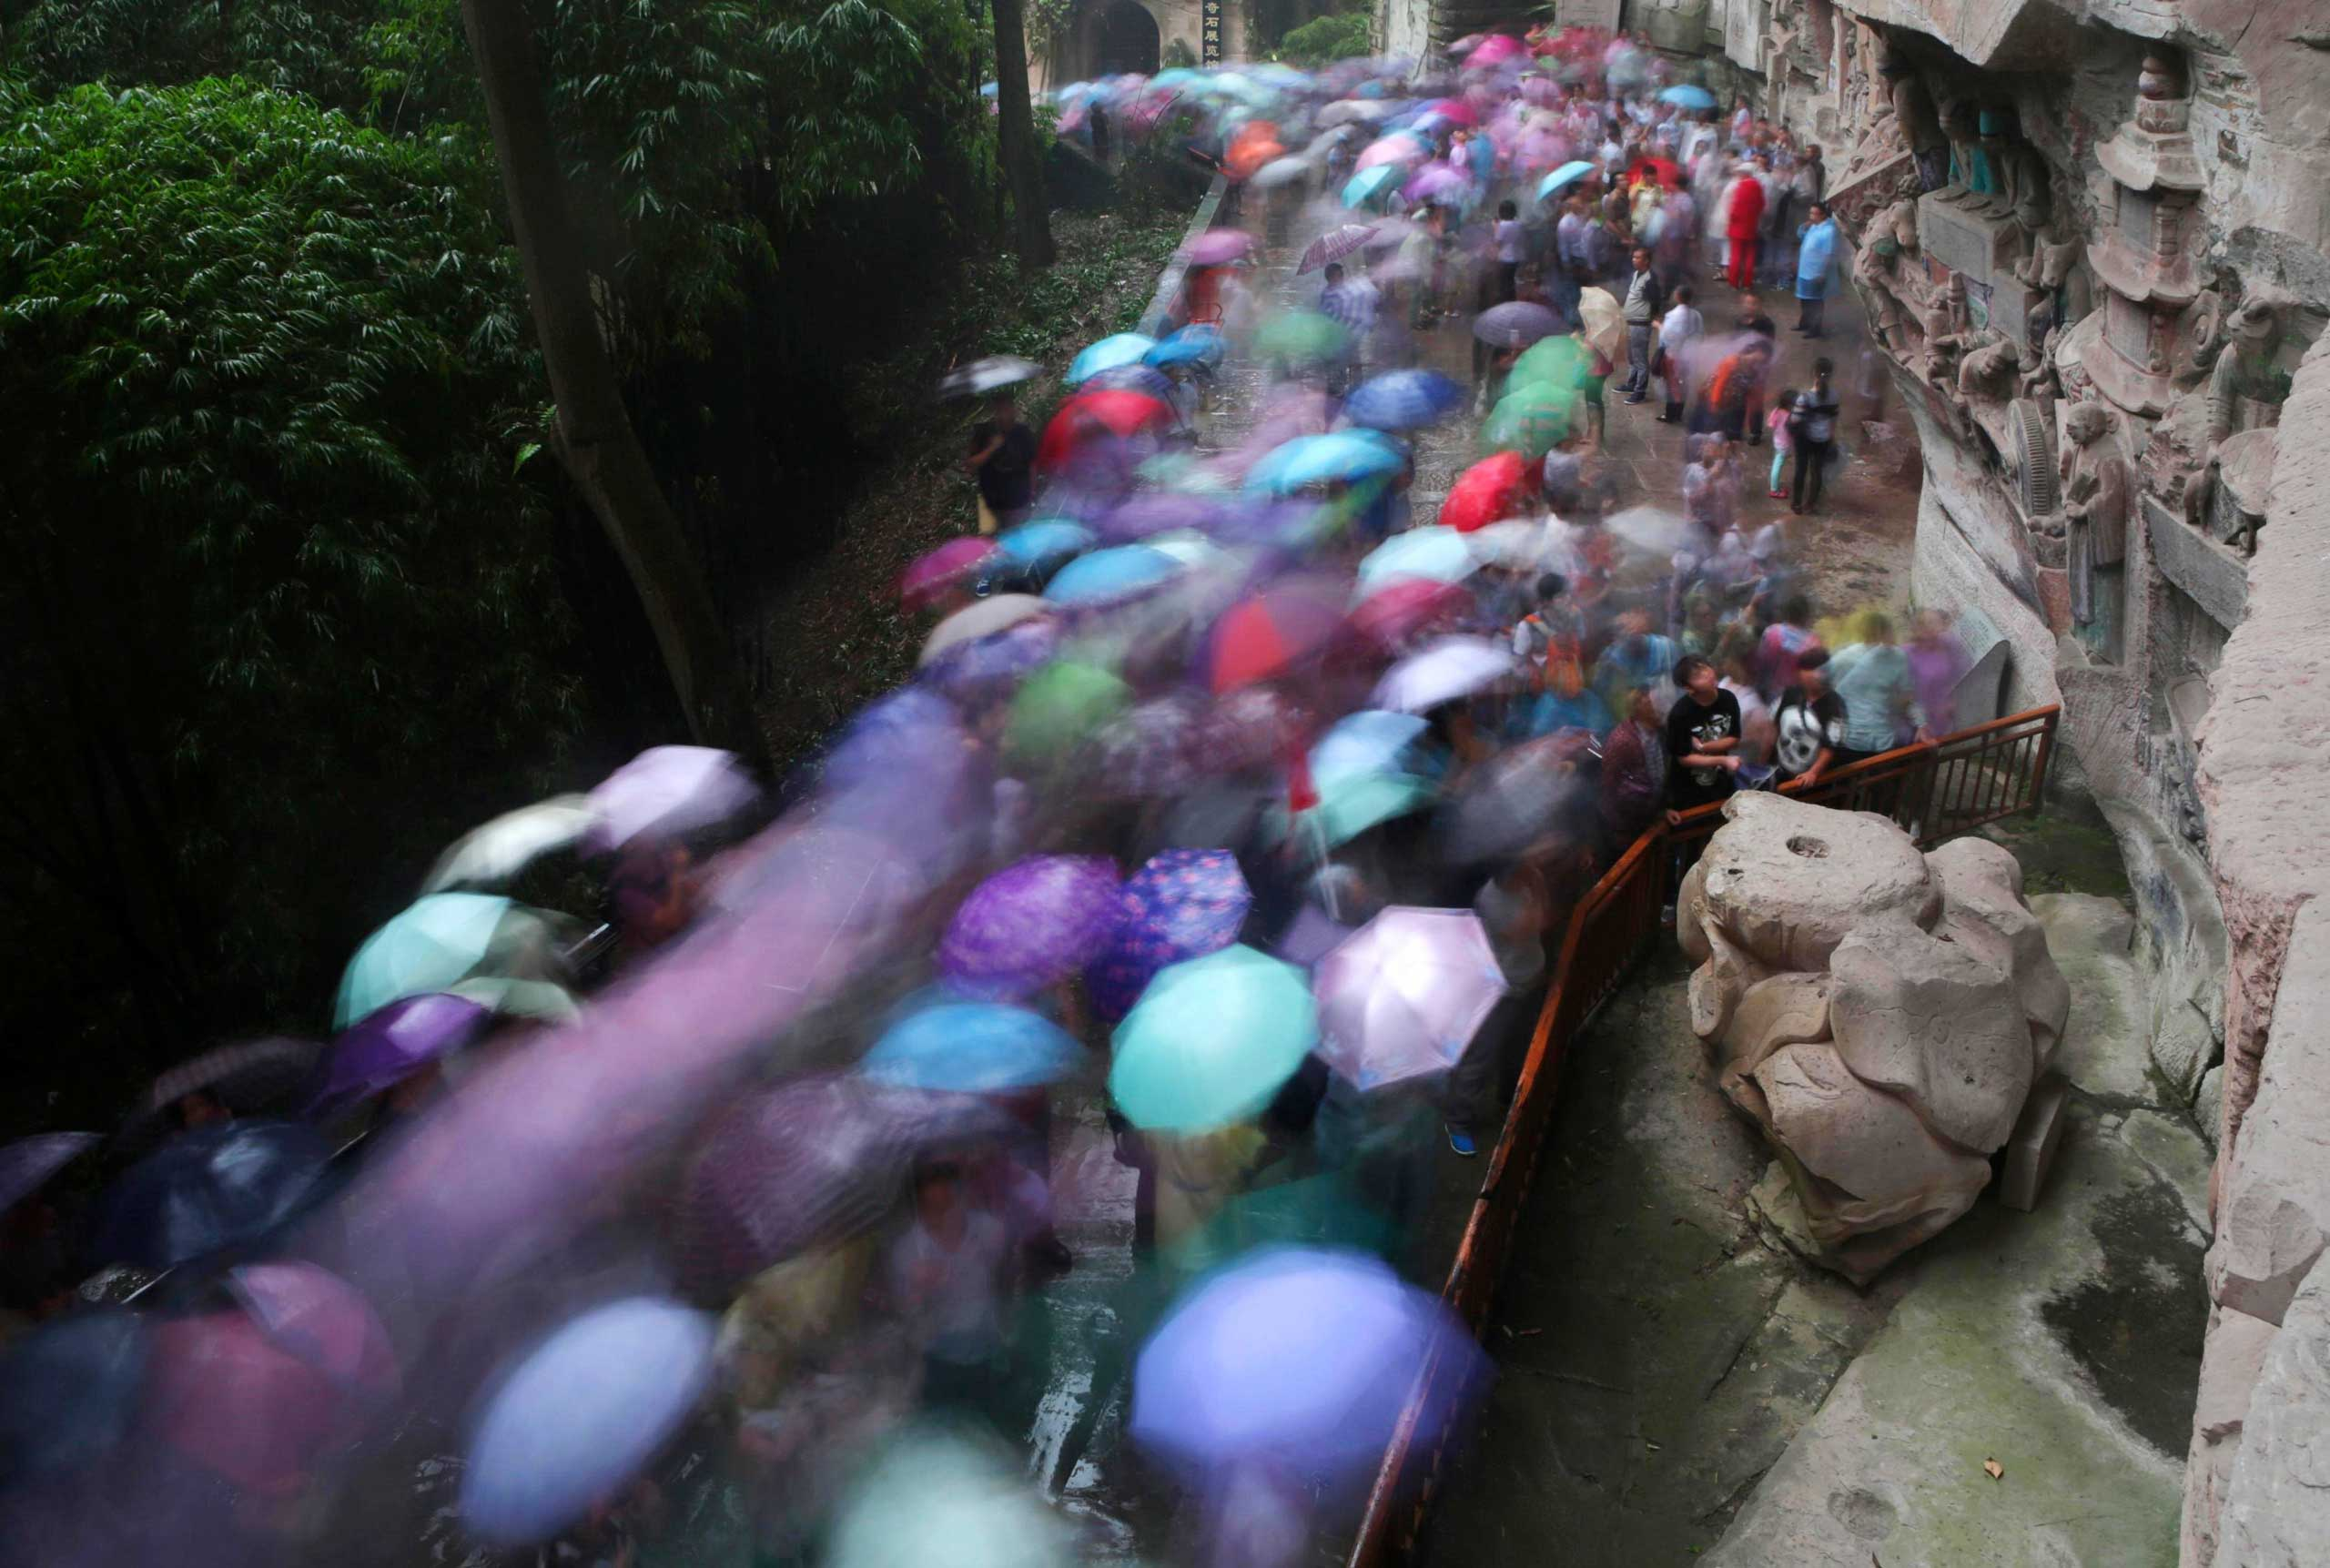 Oct. 3, 2014. Tourists holding umbrellas visit the stone sculptures at the Baoding Mountain on the third day of the seven-day National Day holiday, in Chongqing municipality, China.